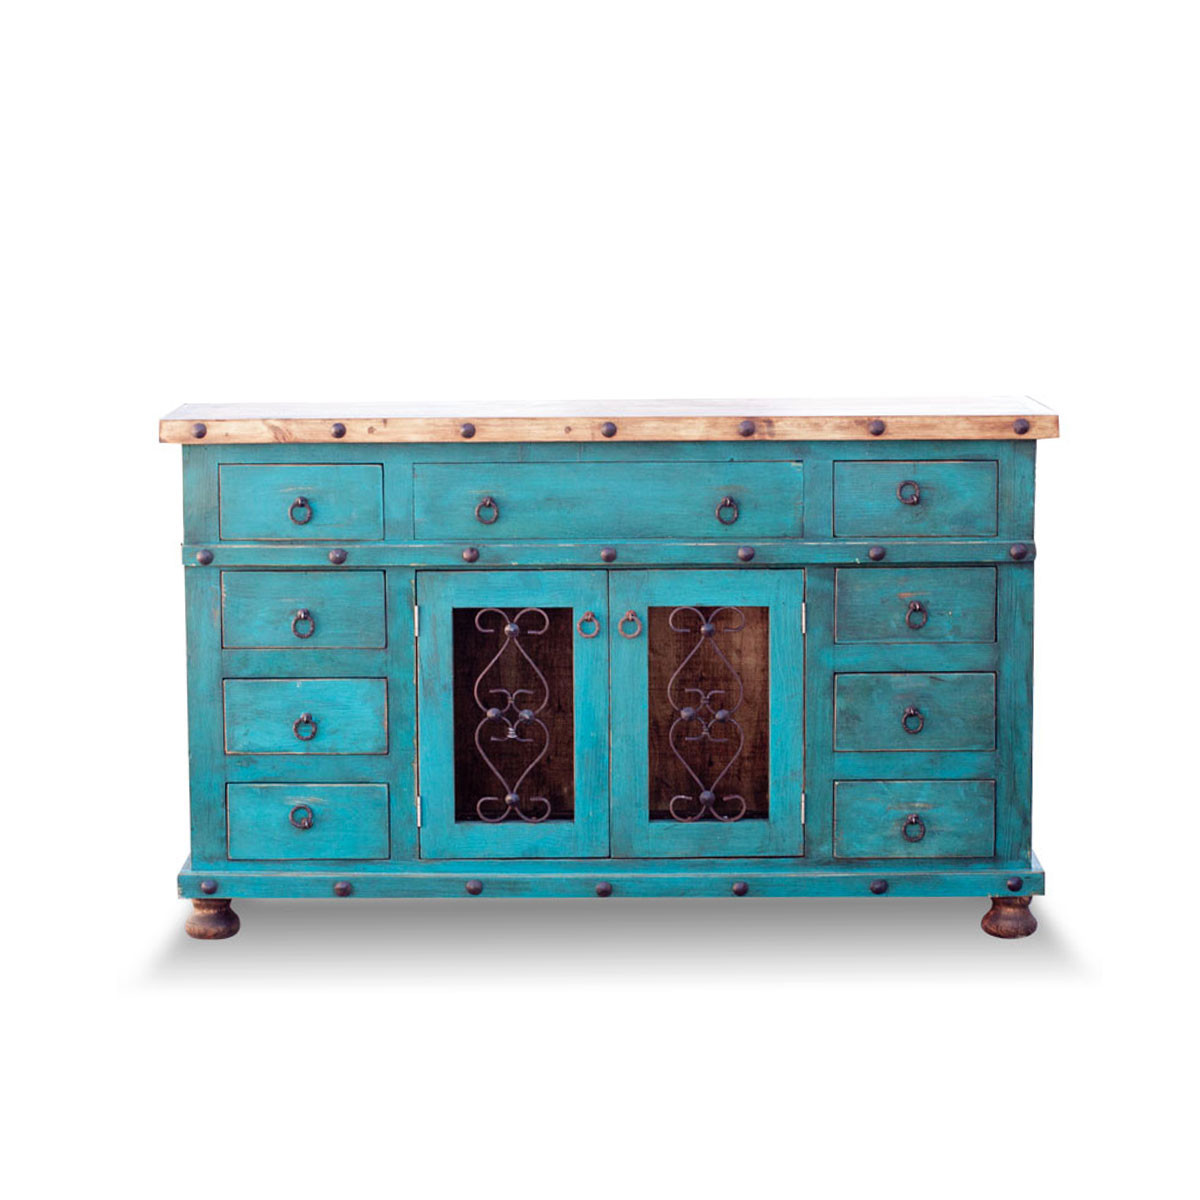 Order Hand Crafted Turquoise Rustic Vanity With Metal